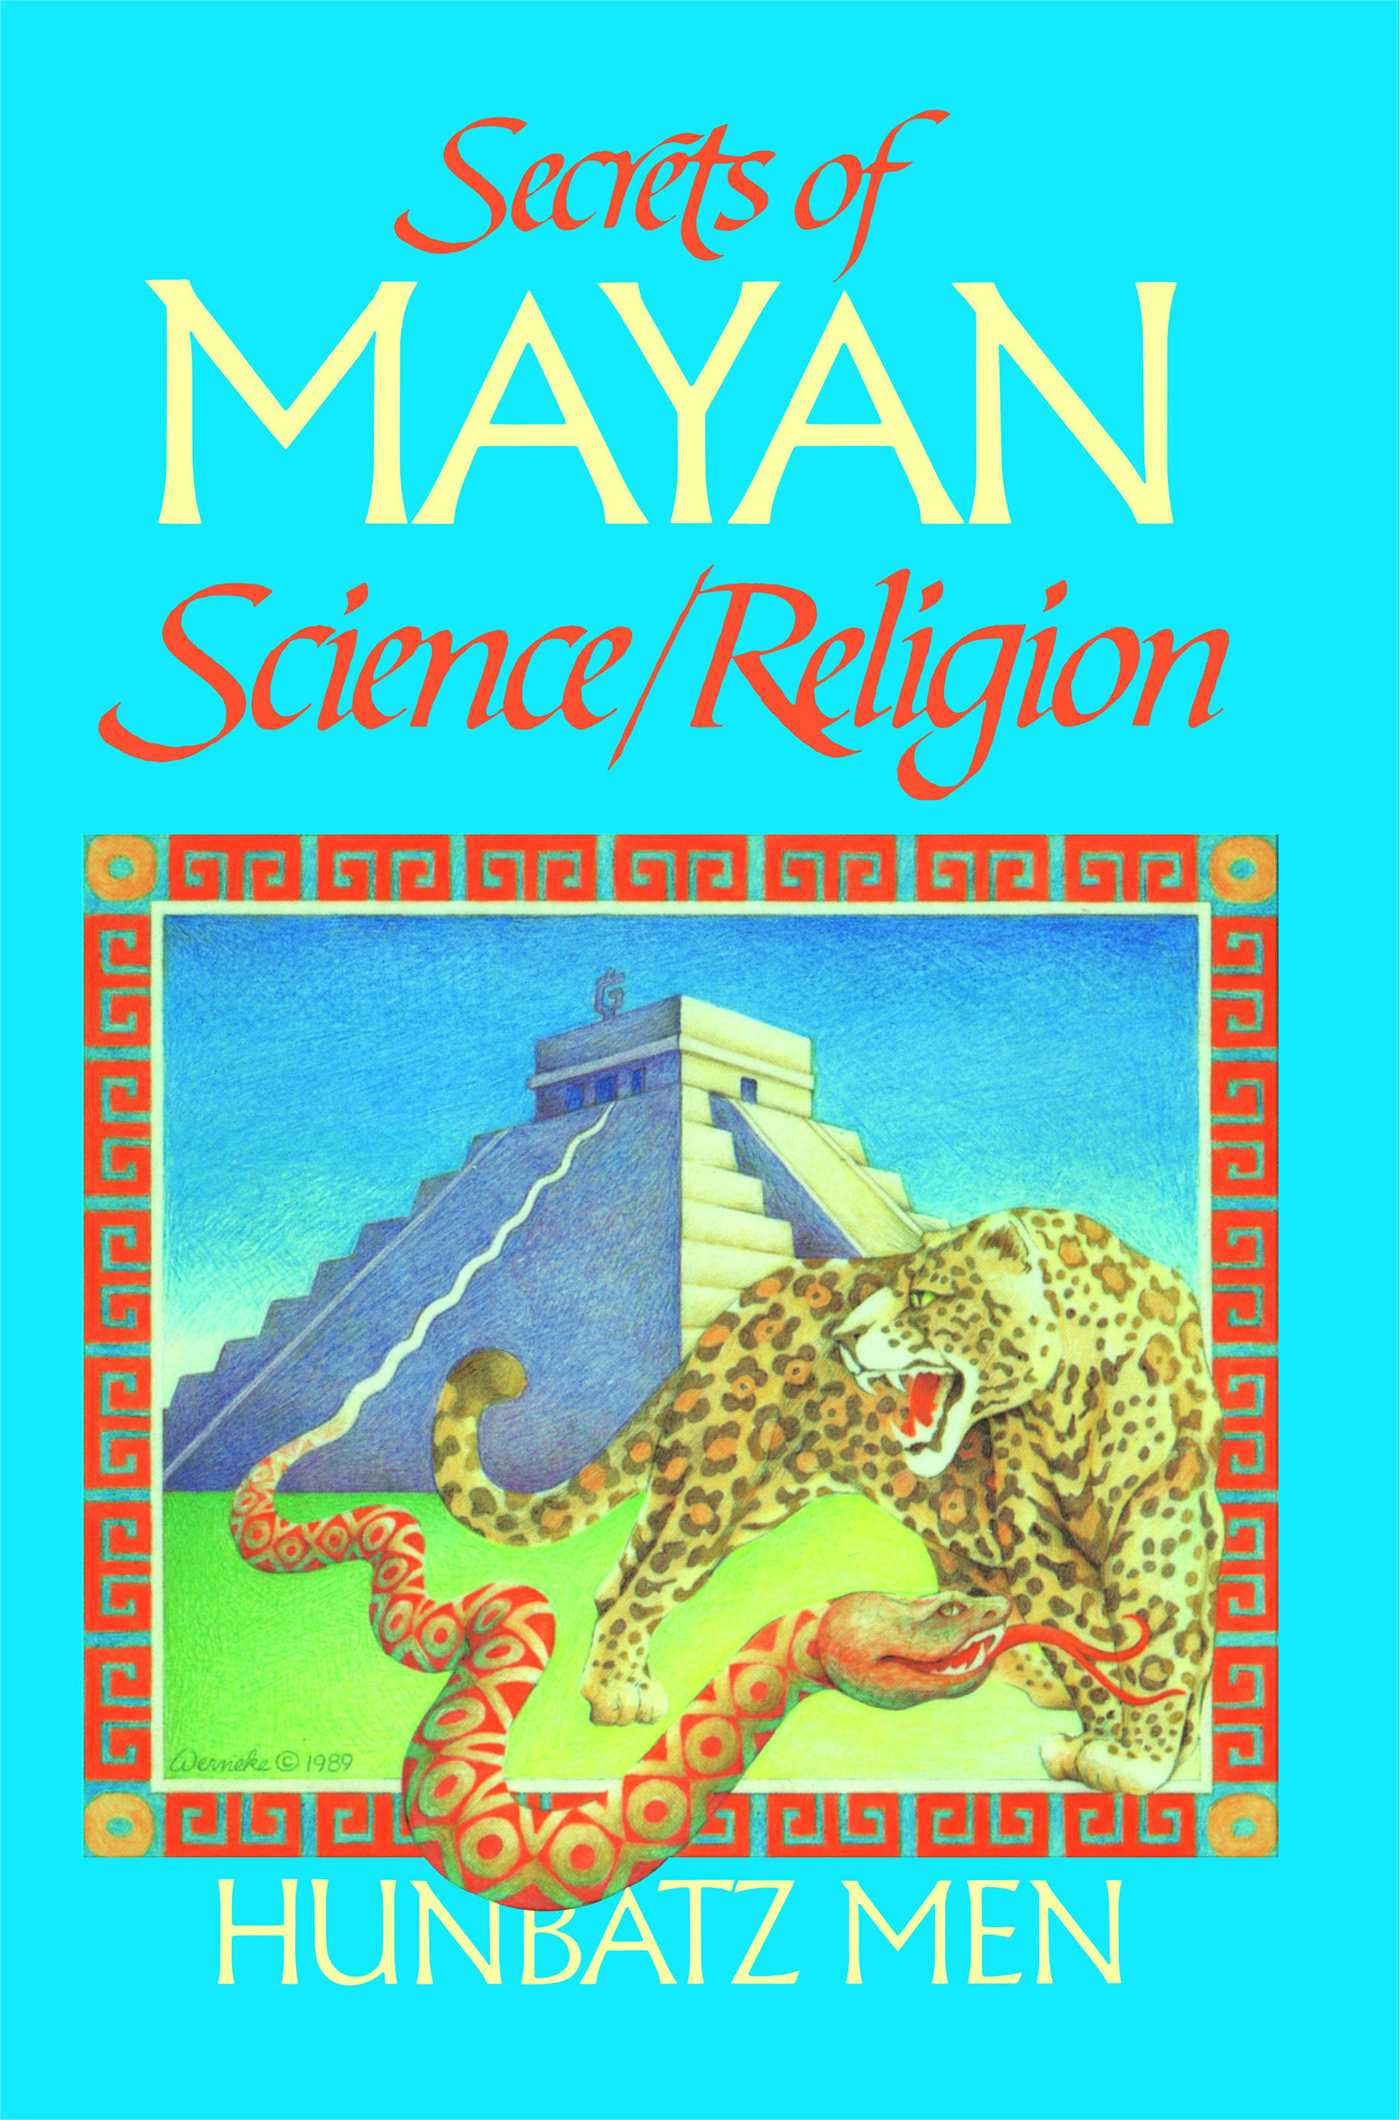 Secrets of mayan science religion 9780939680634 hr